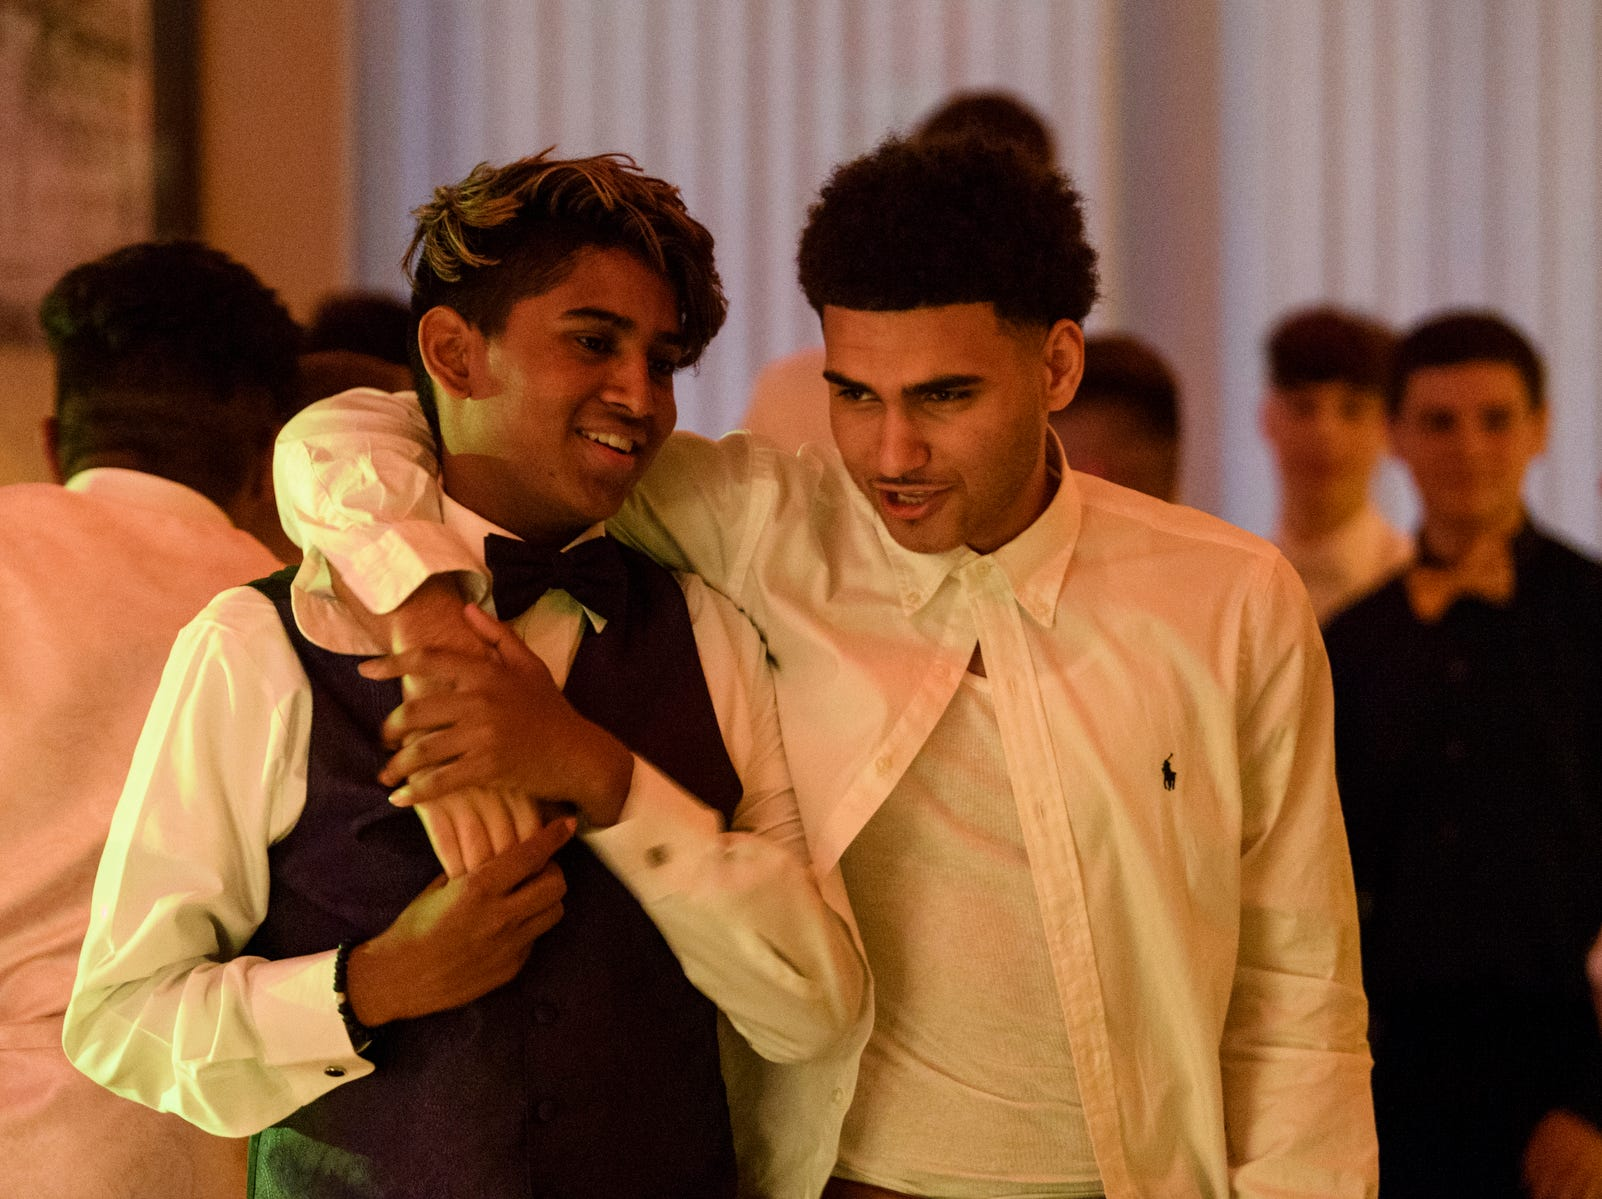 Dylan Kanetkar, left, and Cameron Monroe, right, chat as they walk off the dance floor during Evansville Day School's prom held at the Hadi Shrine Banquet Hall in downtown Evansville, Ind., Saturday, April 27, 2019.